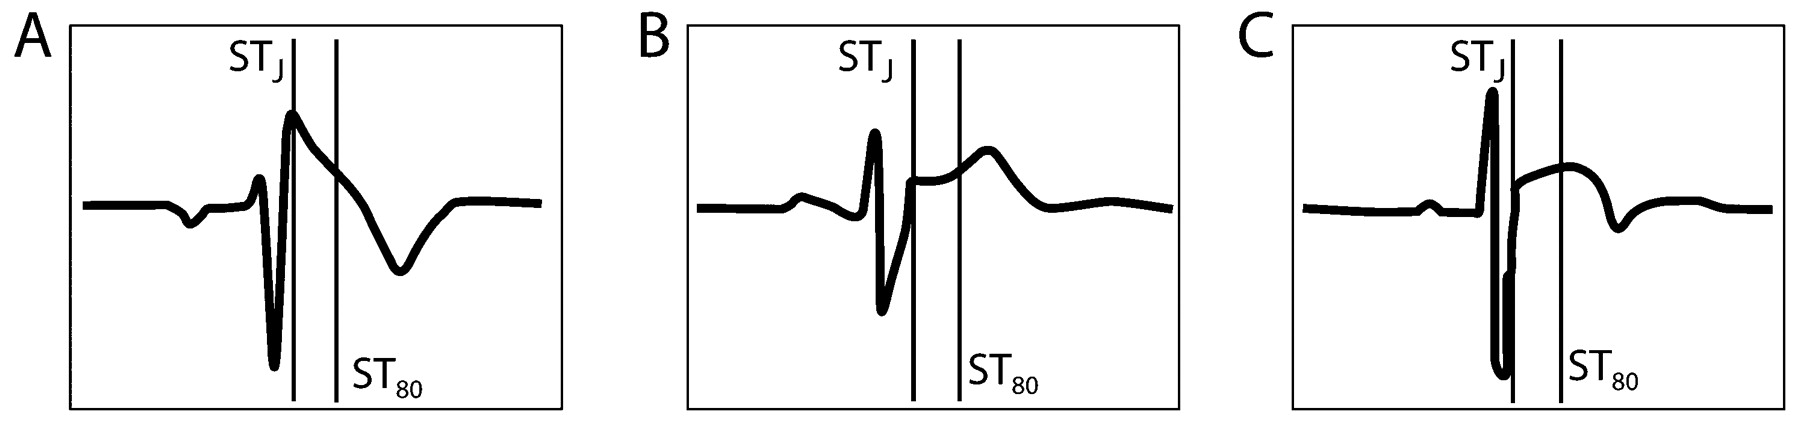 12 Lead Ecg In The Athlete Physiological Versus Pathological